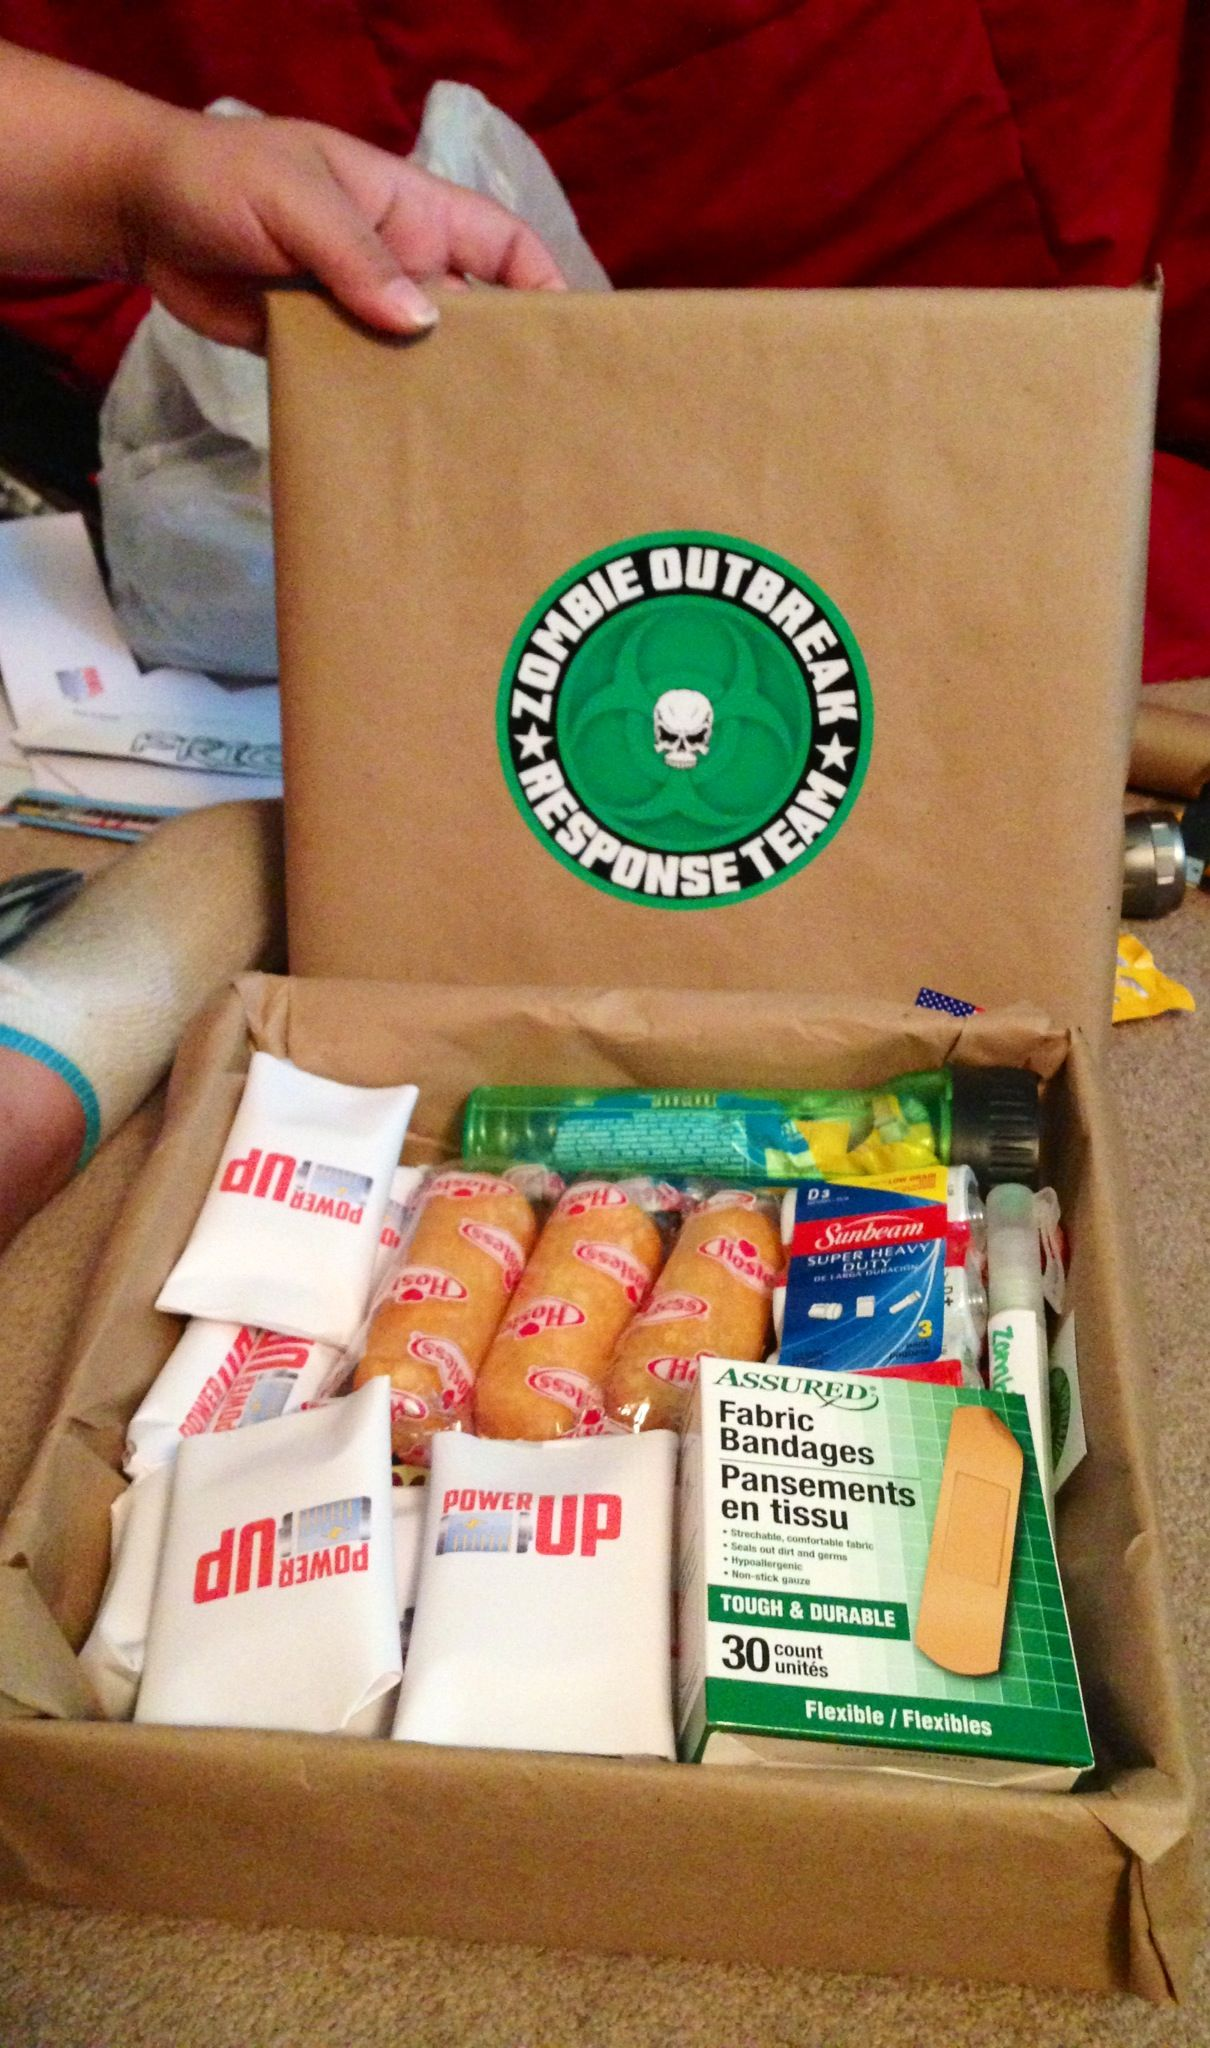 Pin By Ashley Chellino On Been There Done That Funny Boyfriend Gifts Zombie Survival Kit Boyfriend Gifts